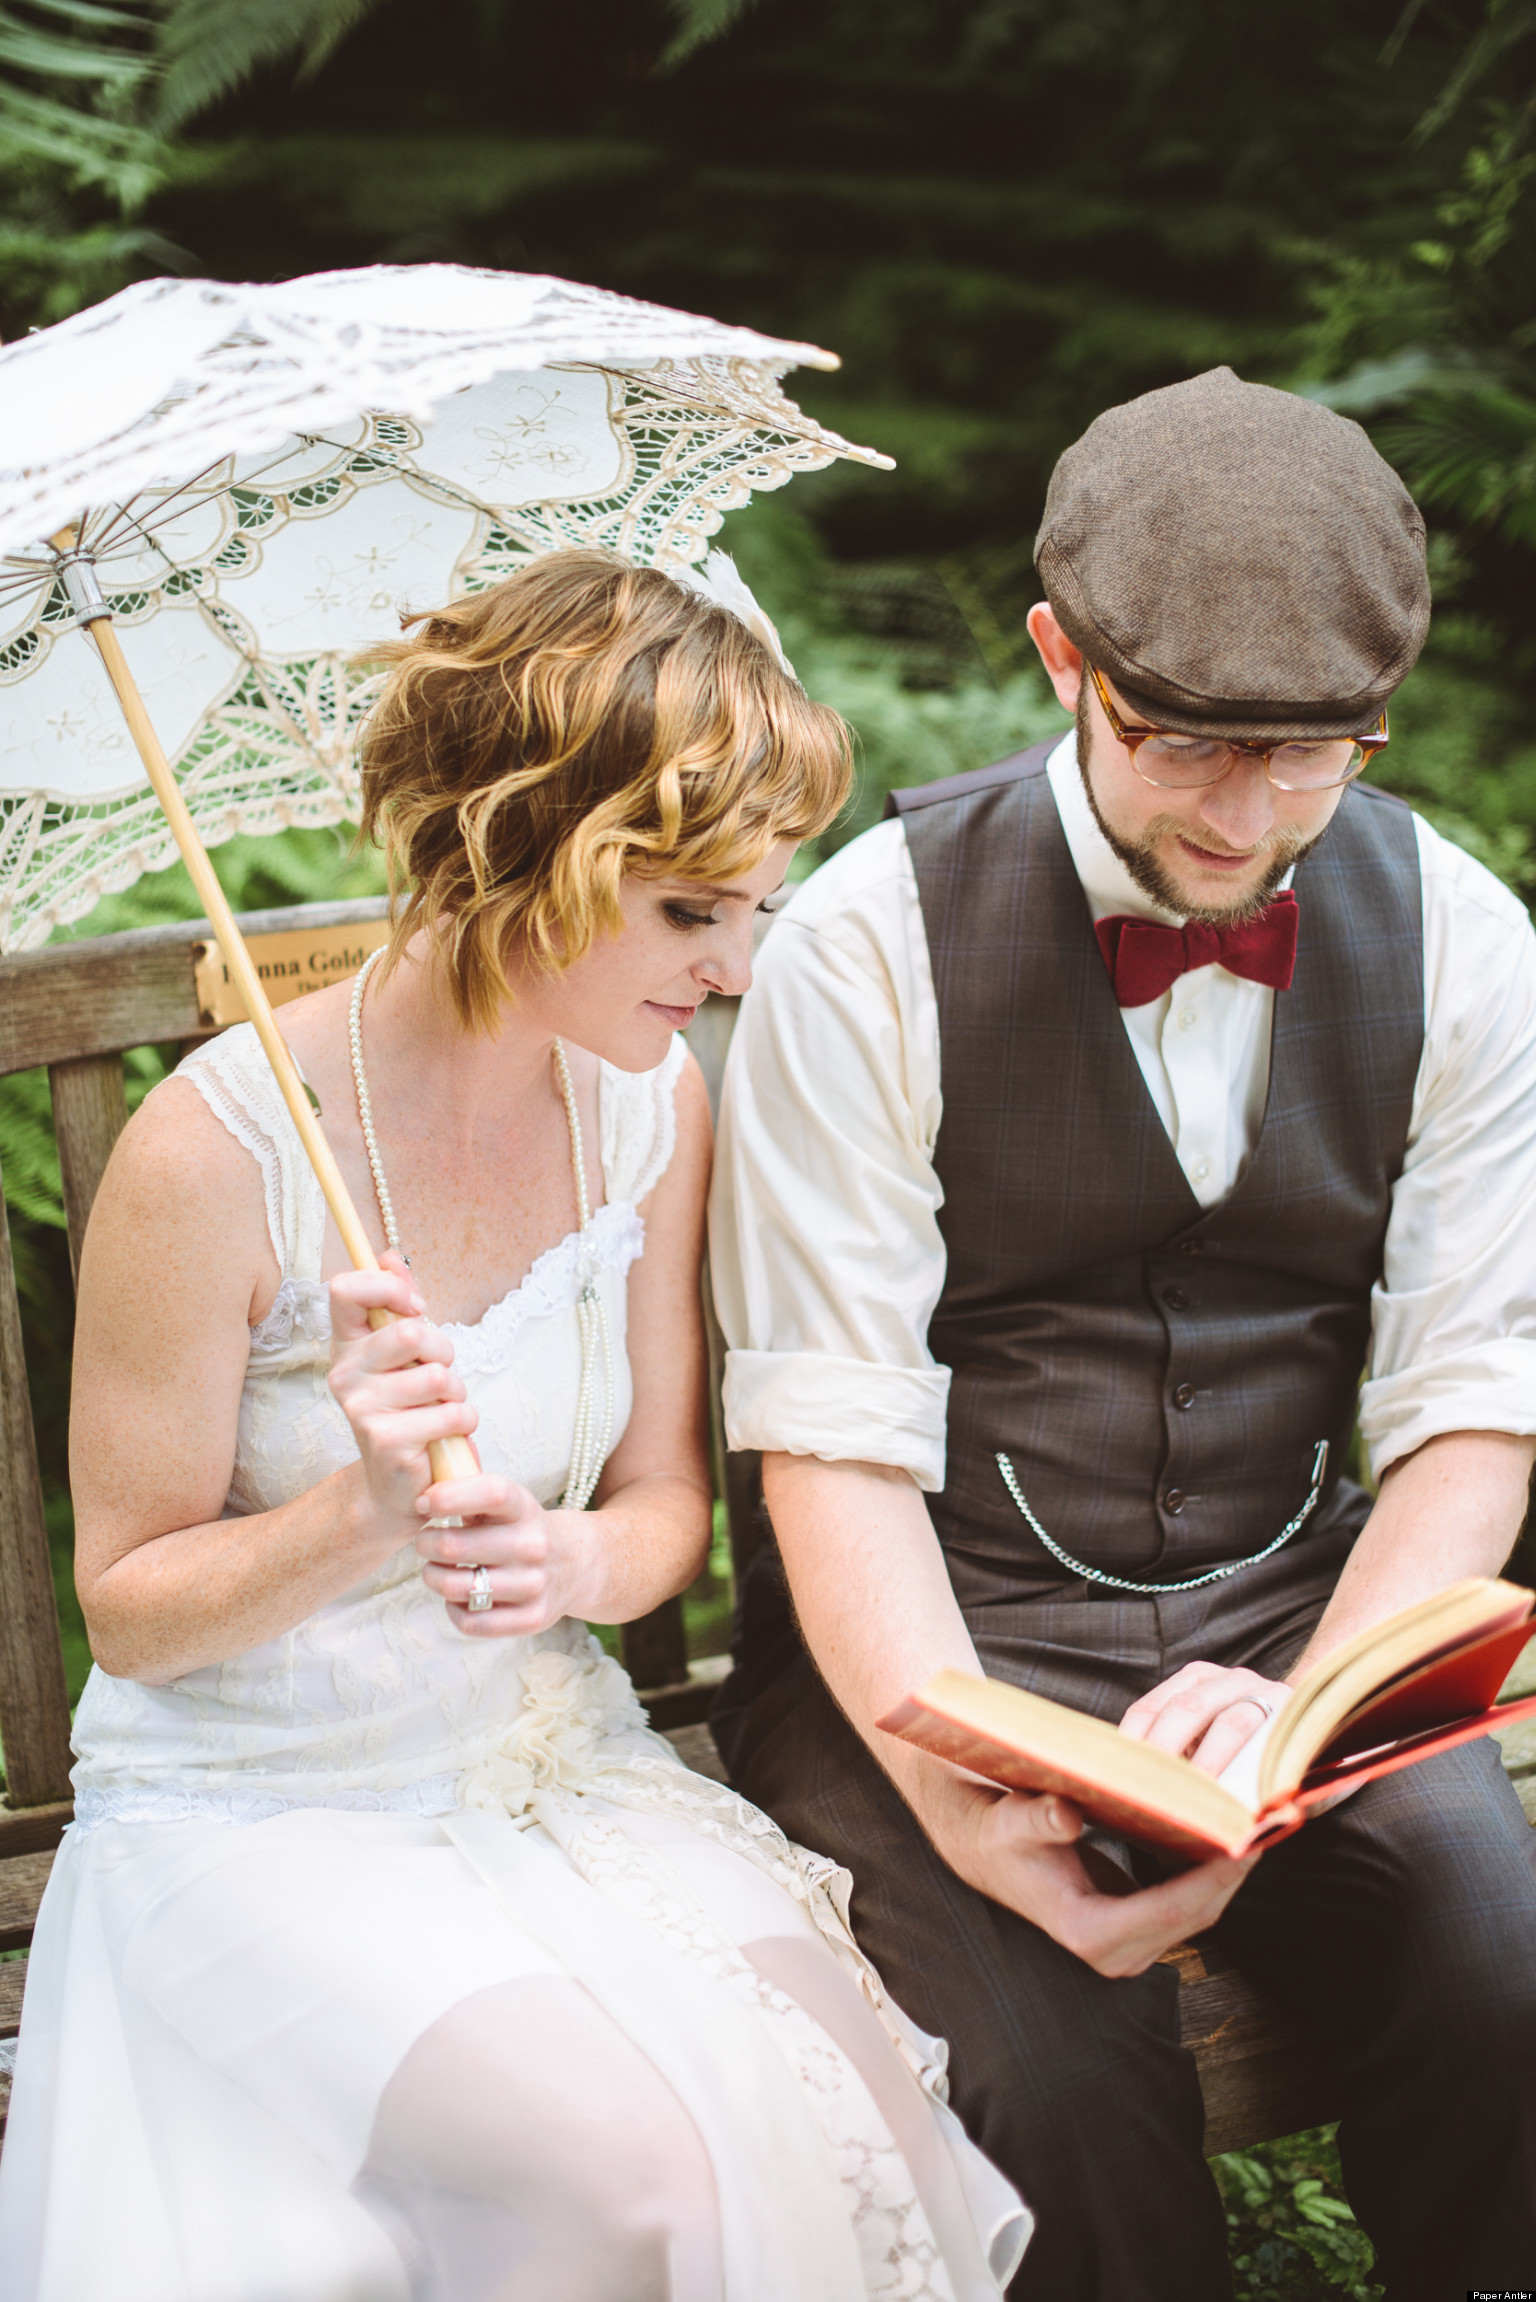 Real Weddings: 'Great Gatsby'-Inspired Nuptials (PHOTOS